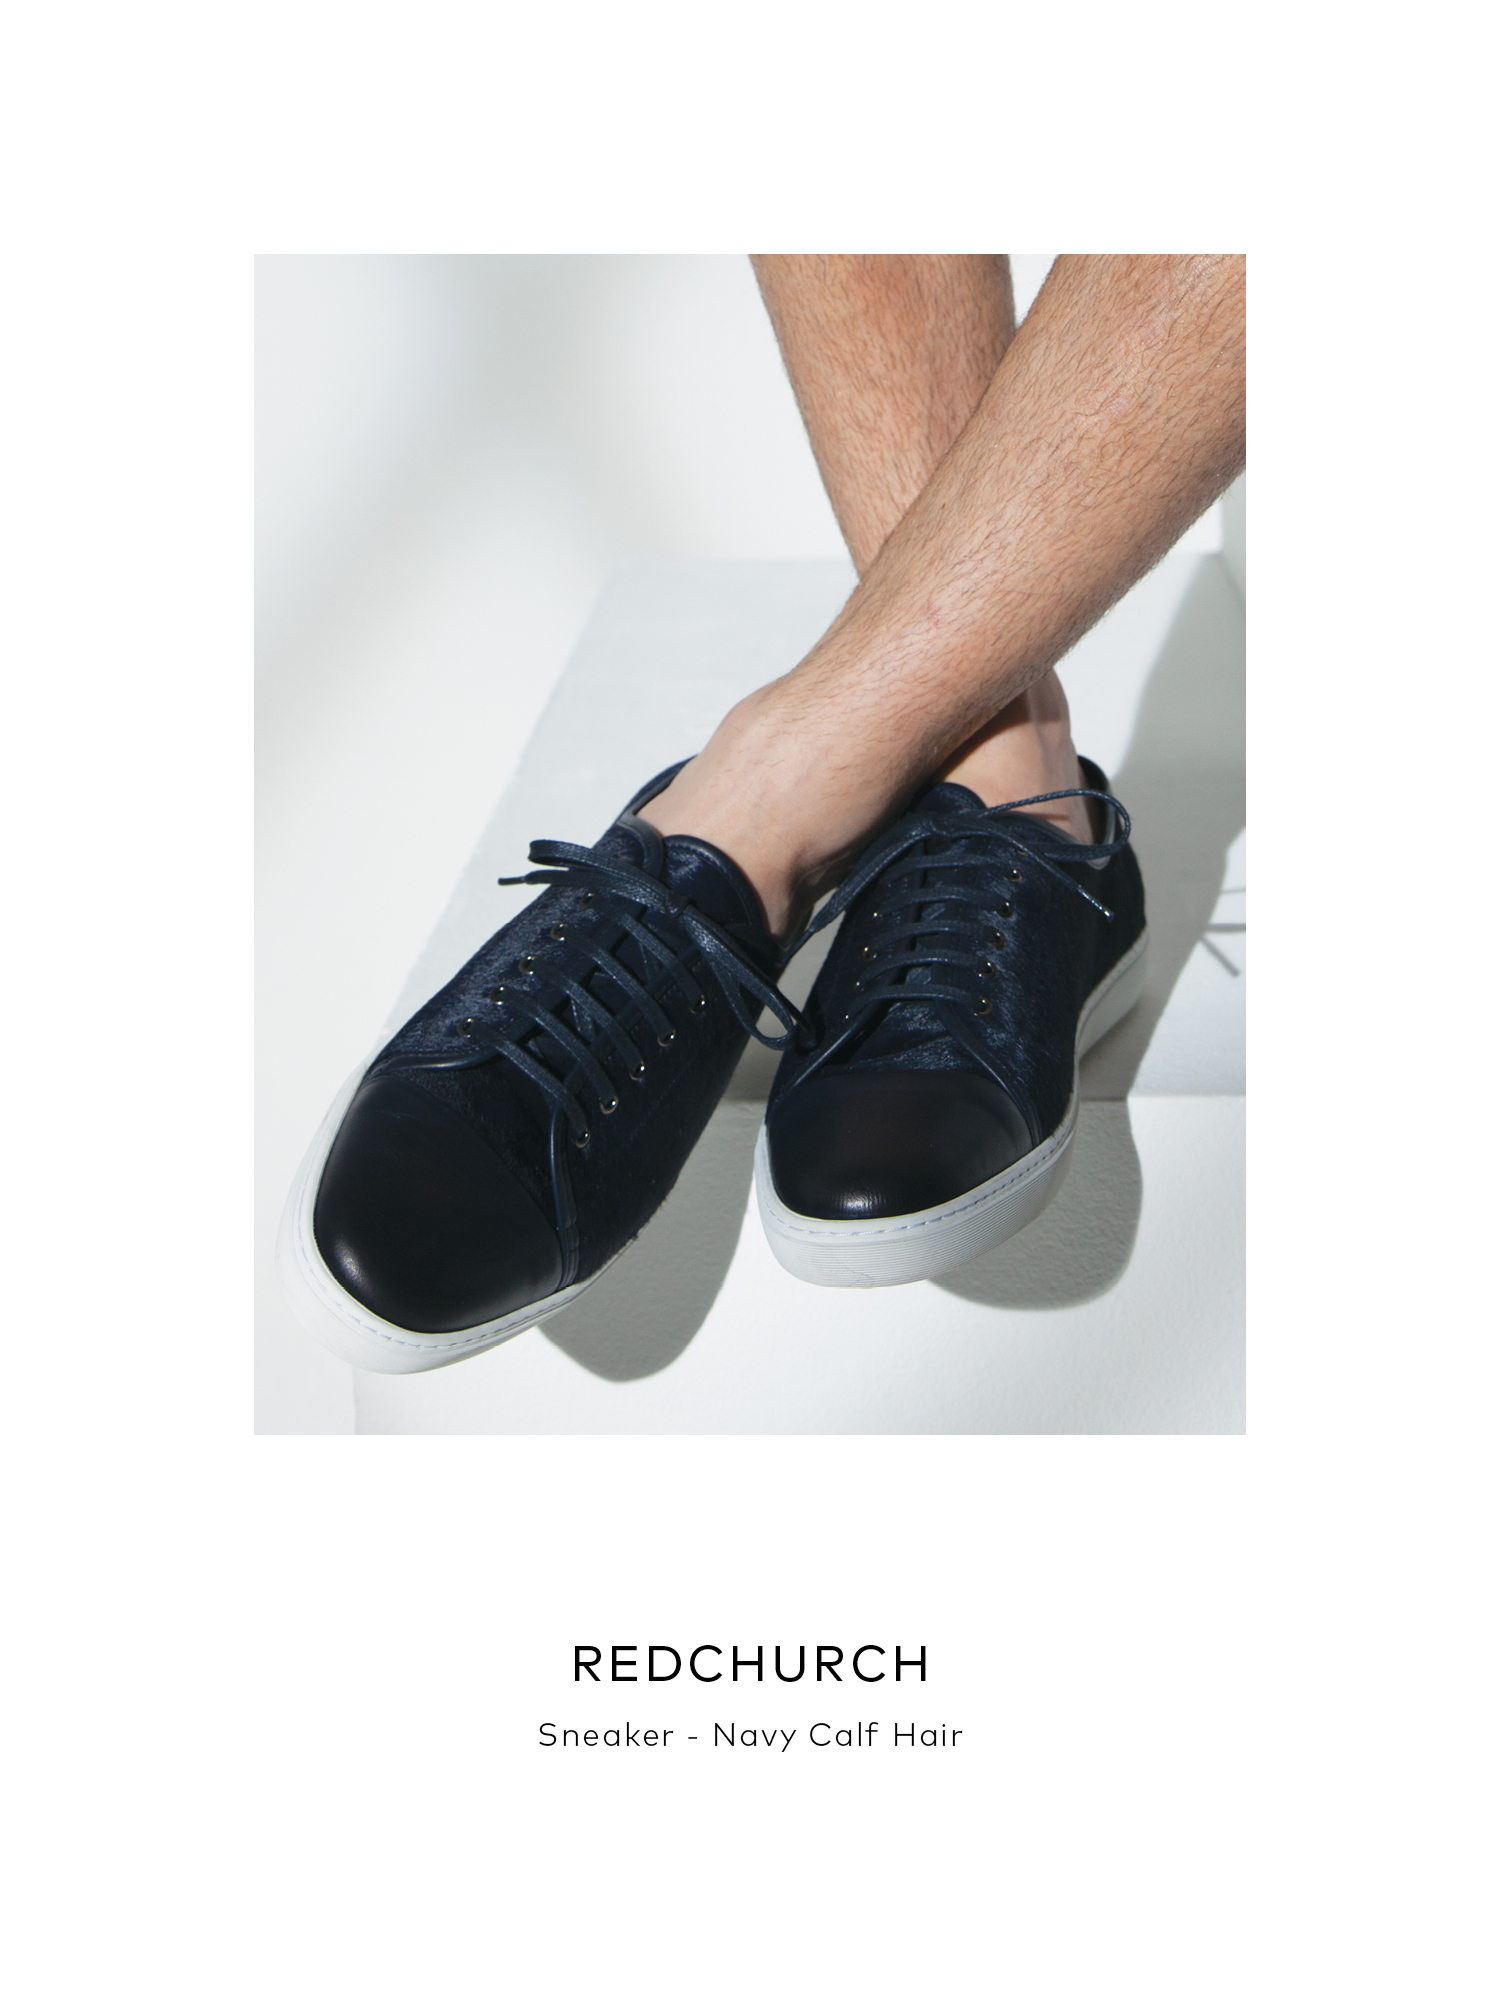 Redchurch - Navy Calf Hair